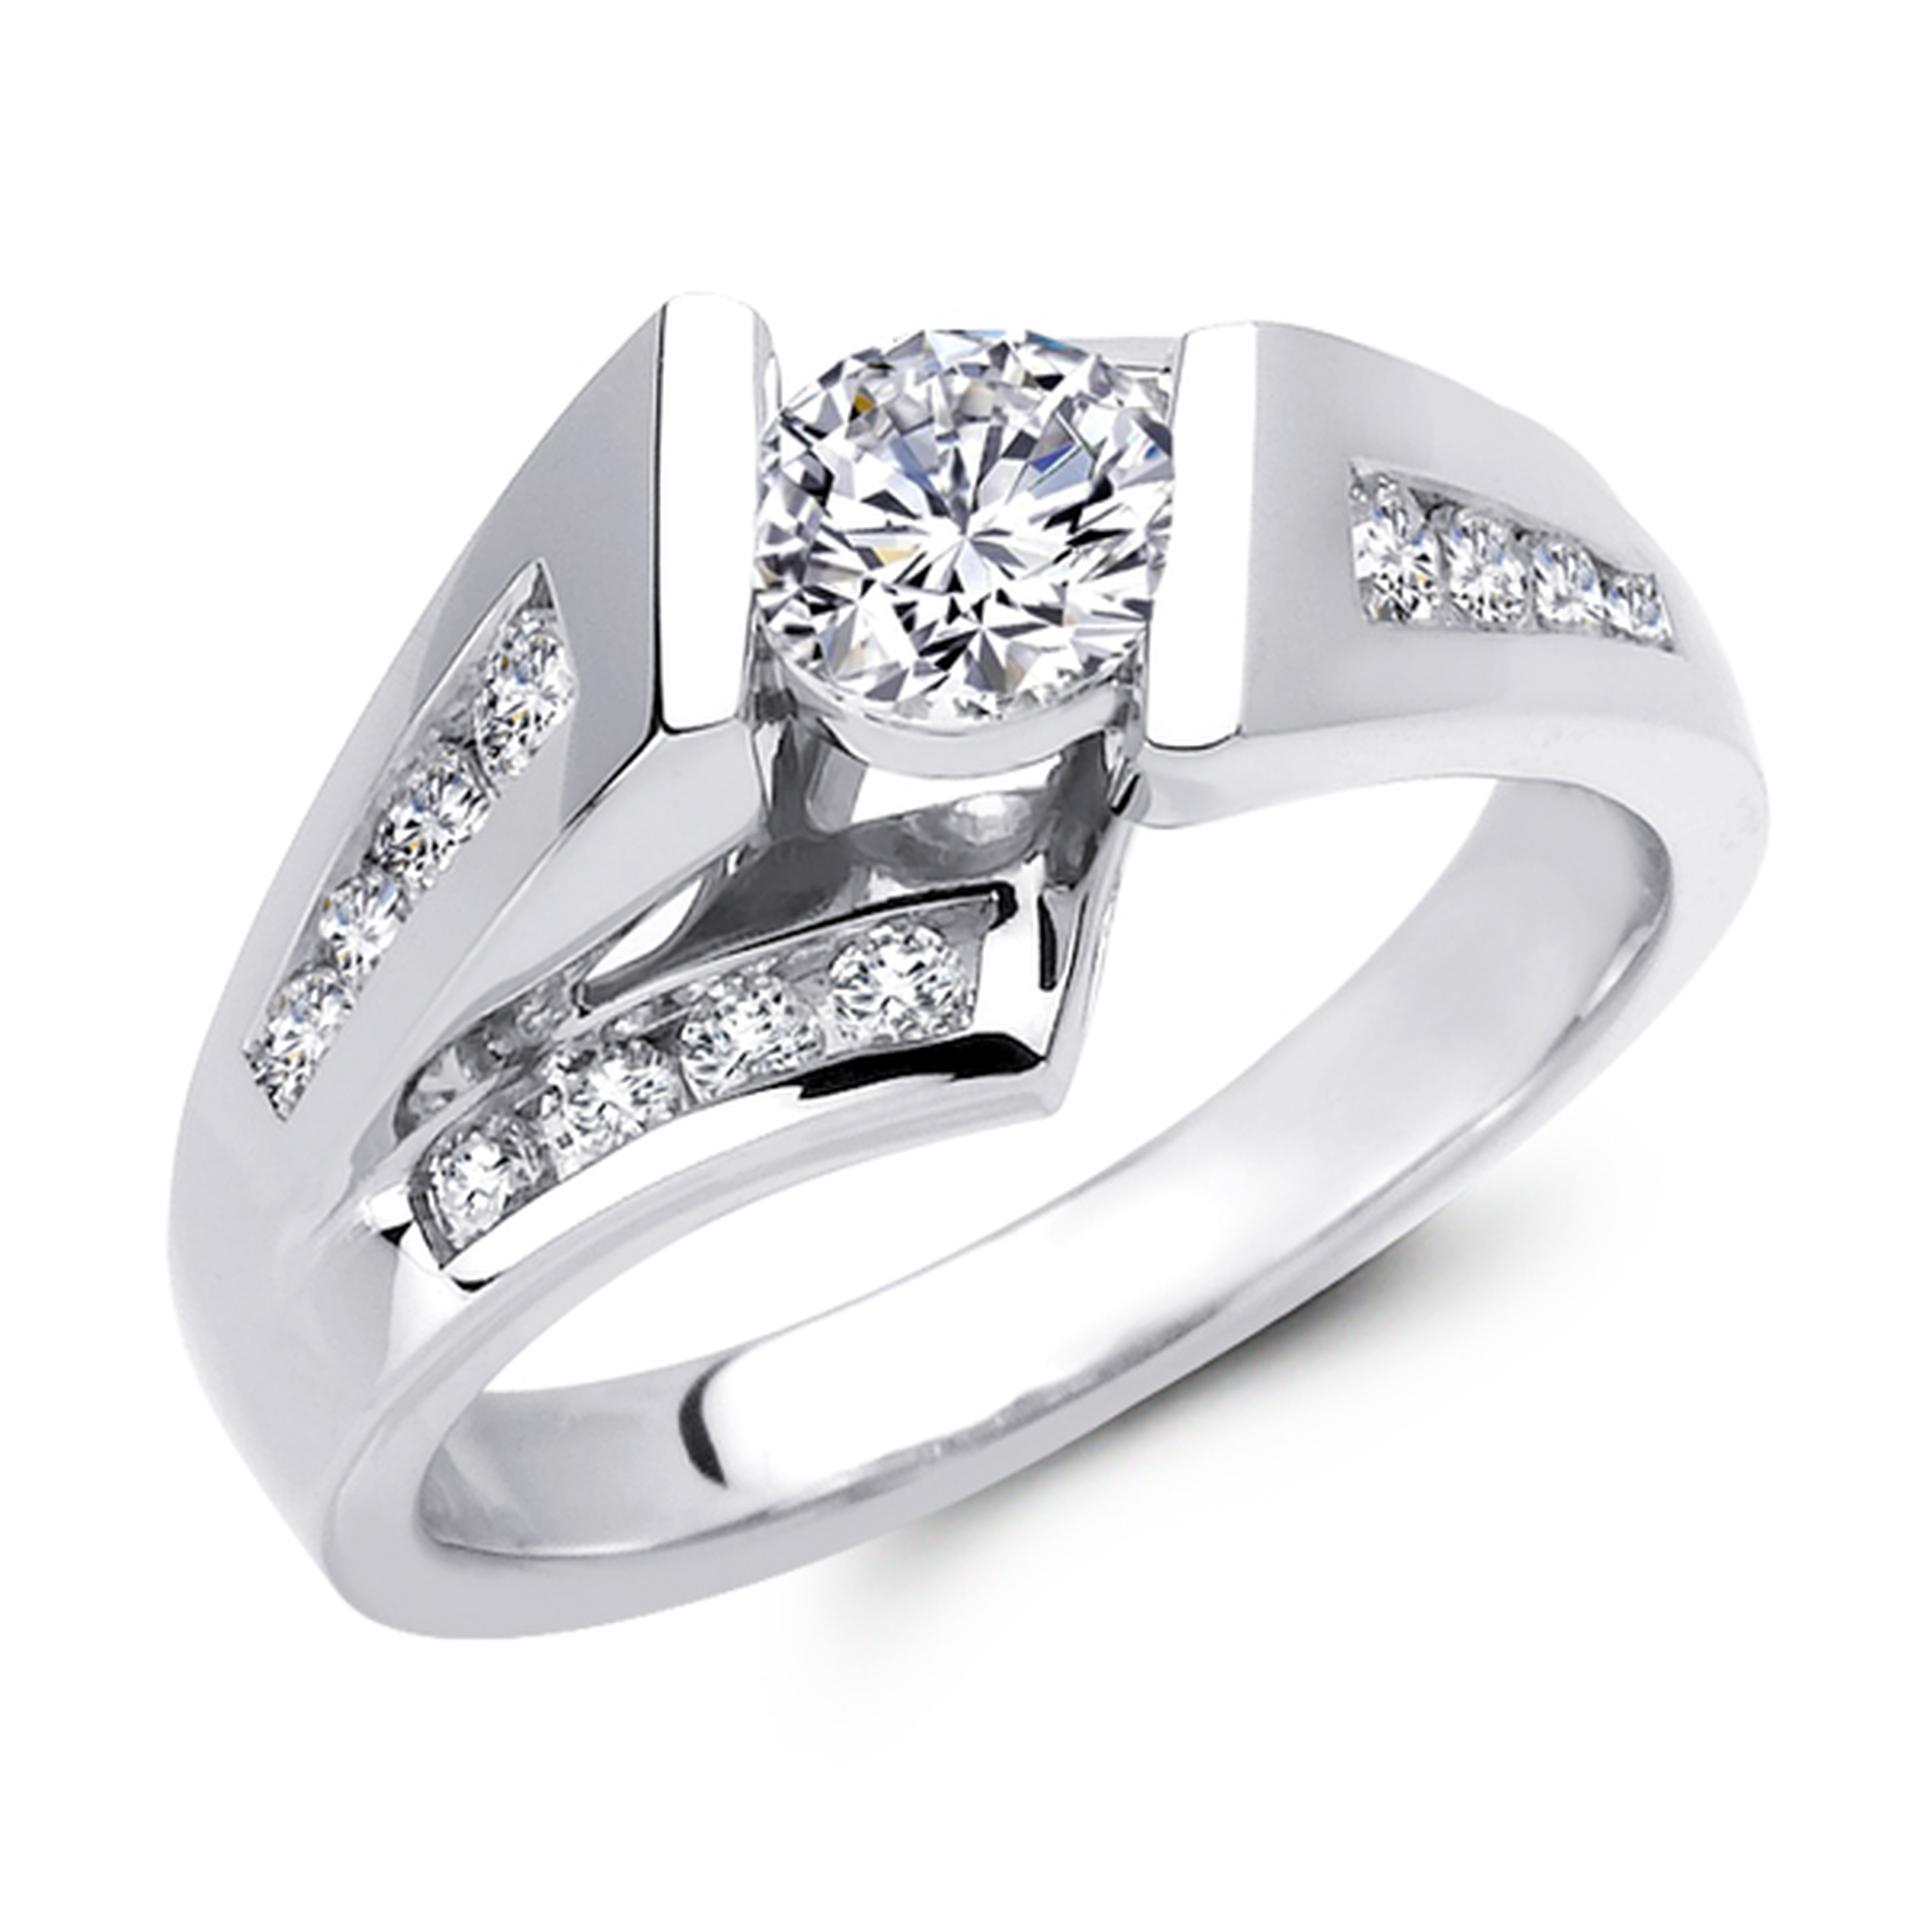 Fine Quality Diamond Jewelry Engagement Ring